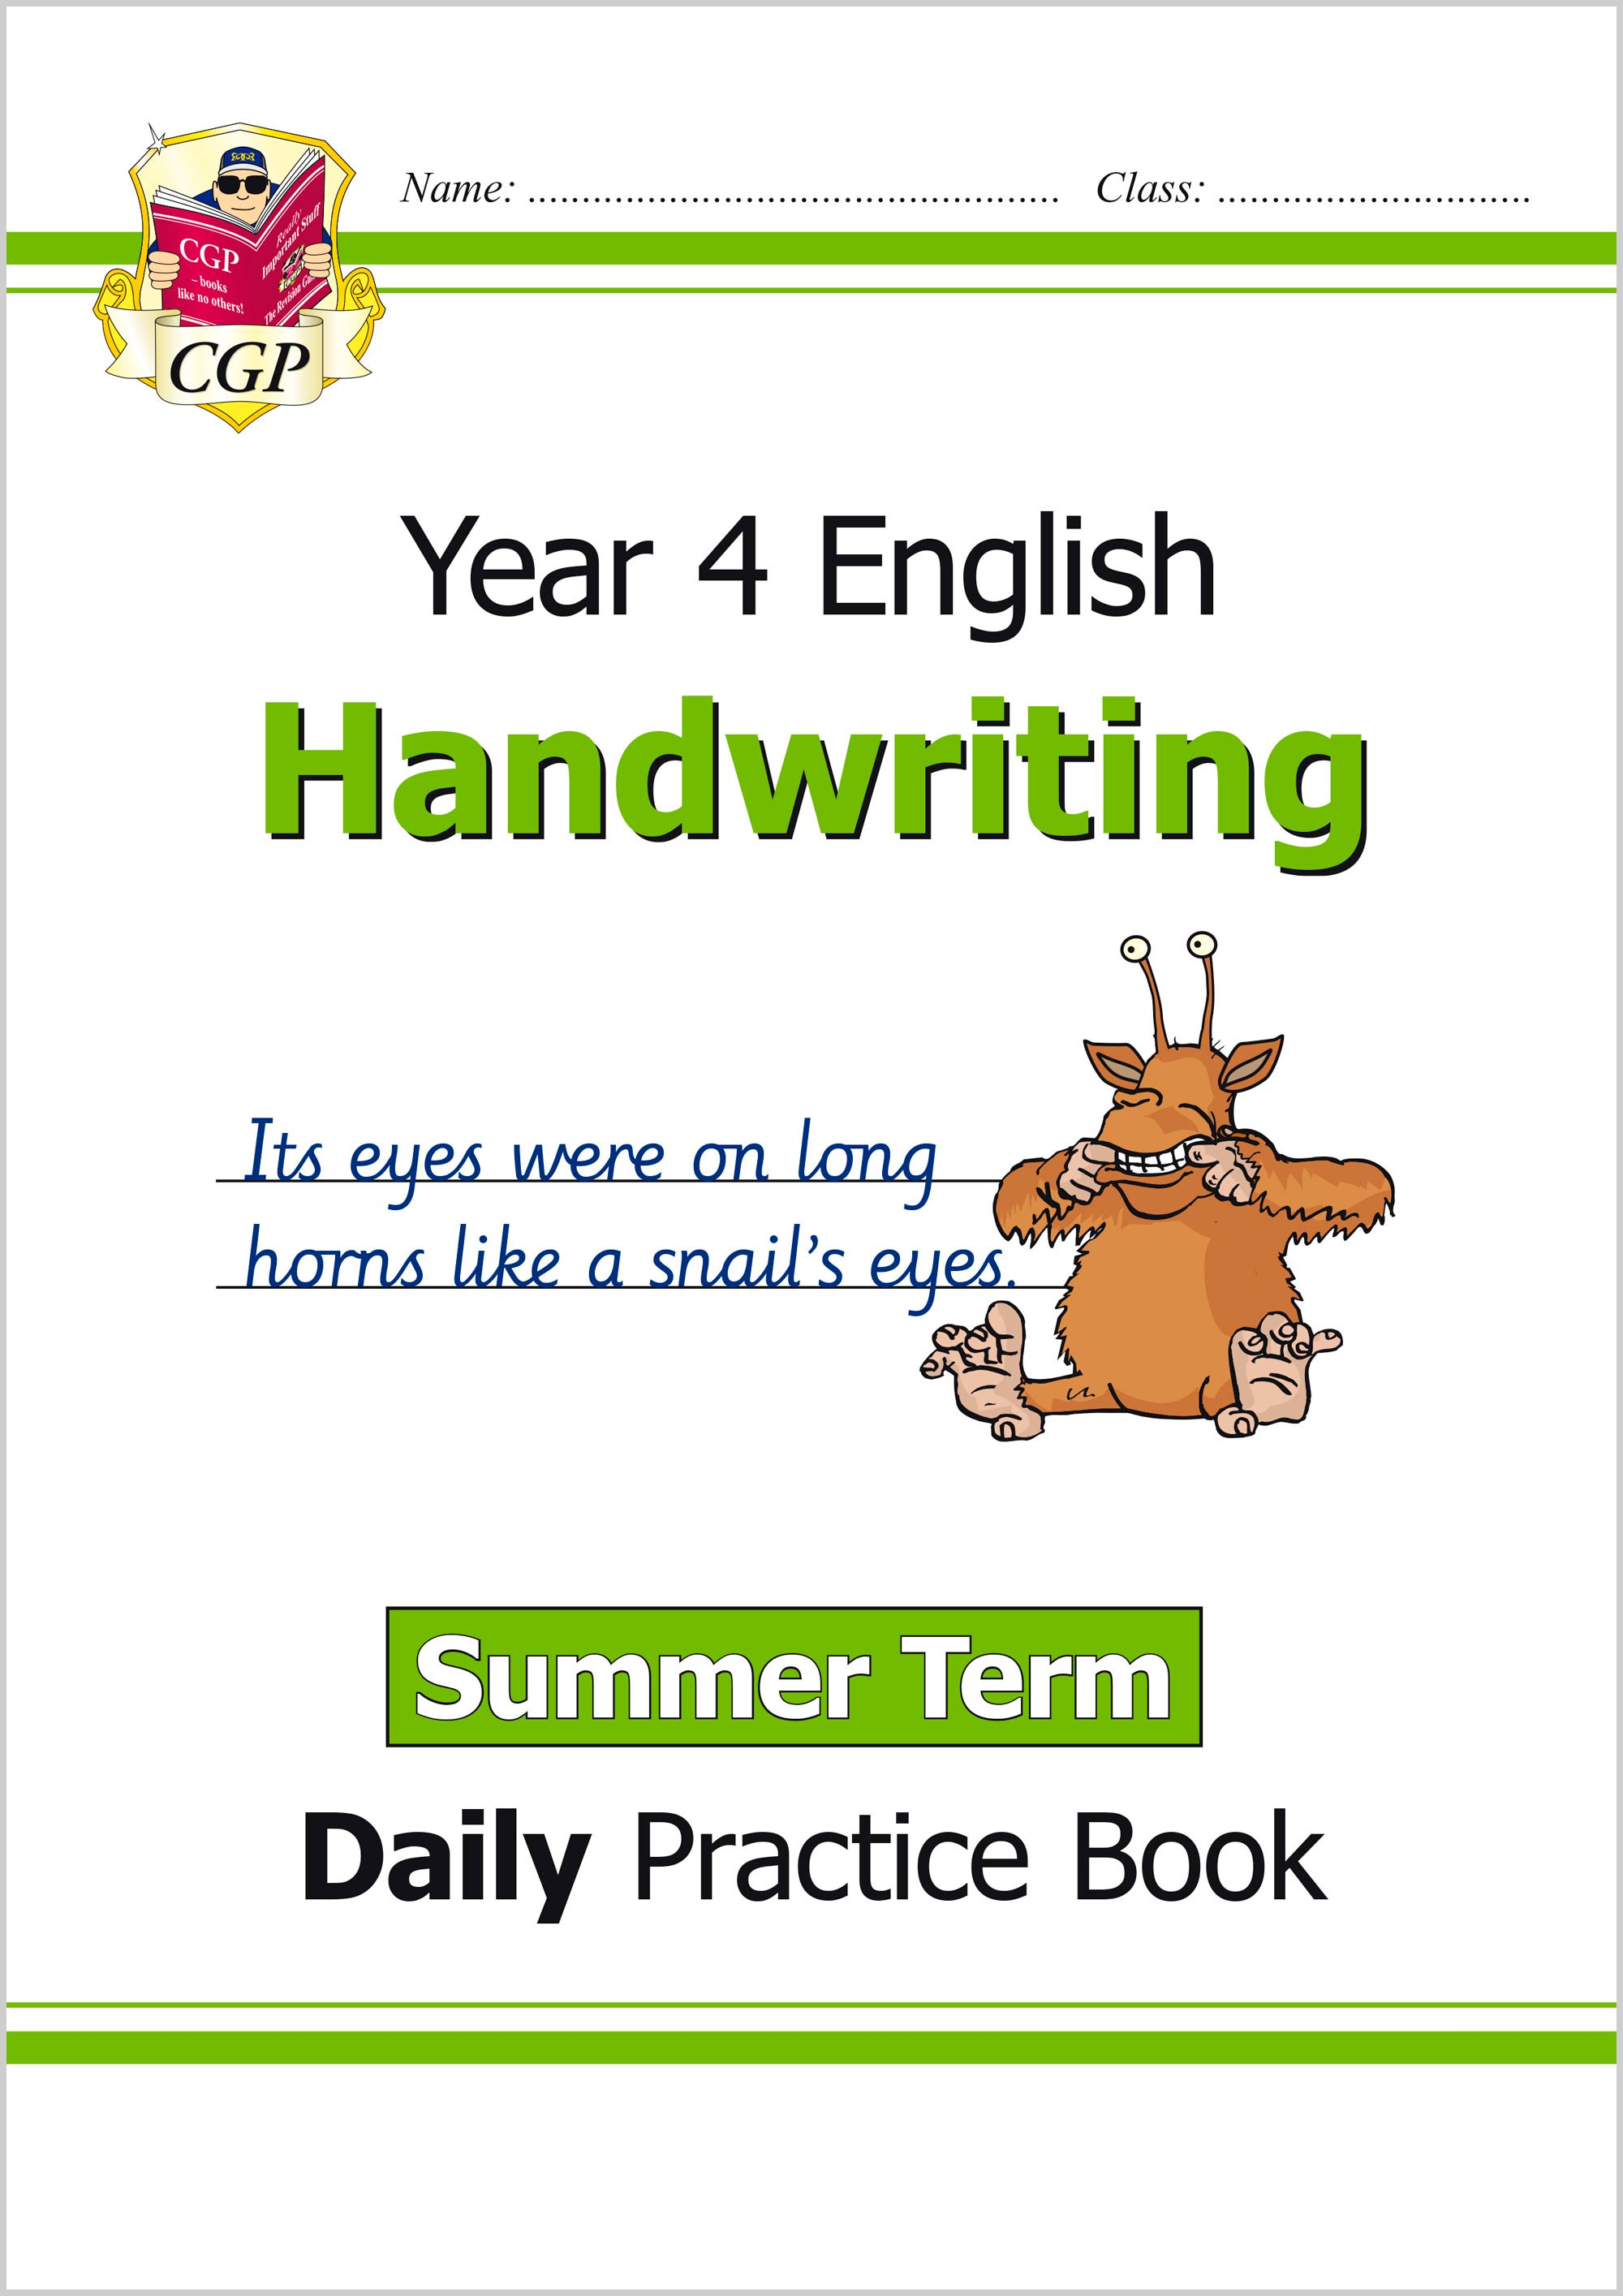 E4HWSU21 - New KS2 Handwriting Daily Practice Book: Year 4 - Summer Term